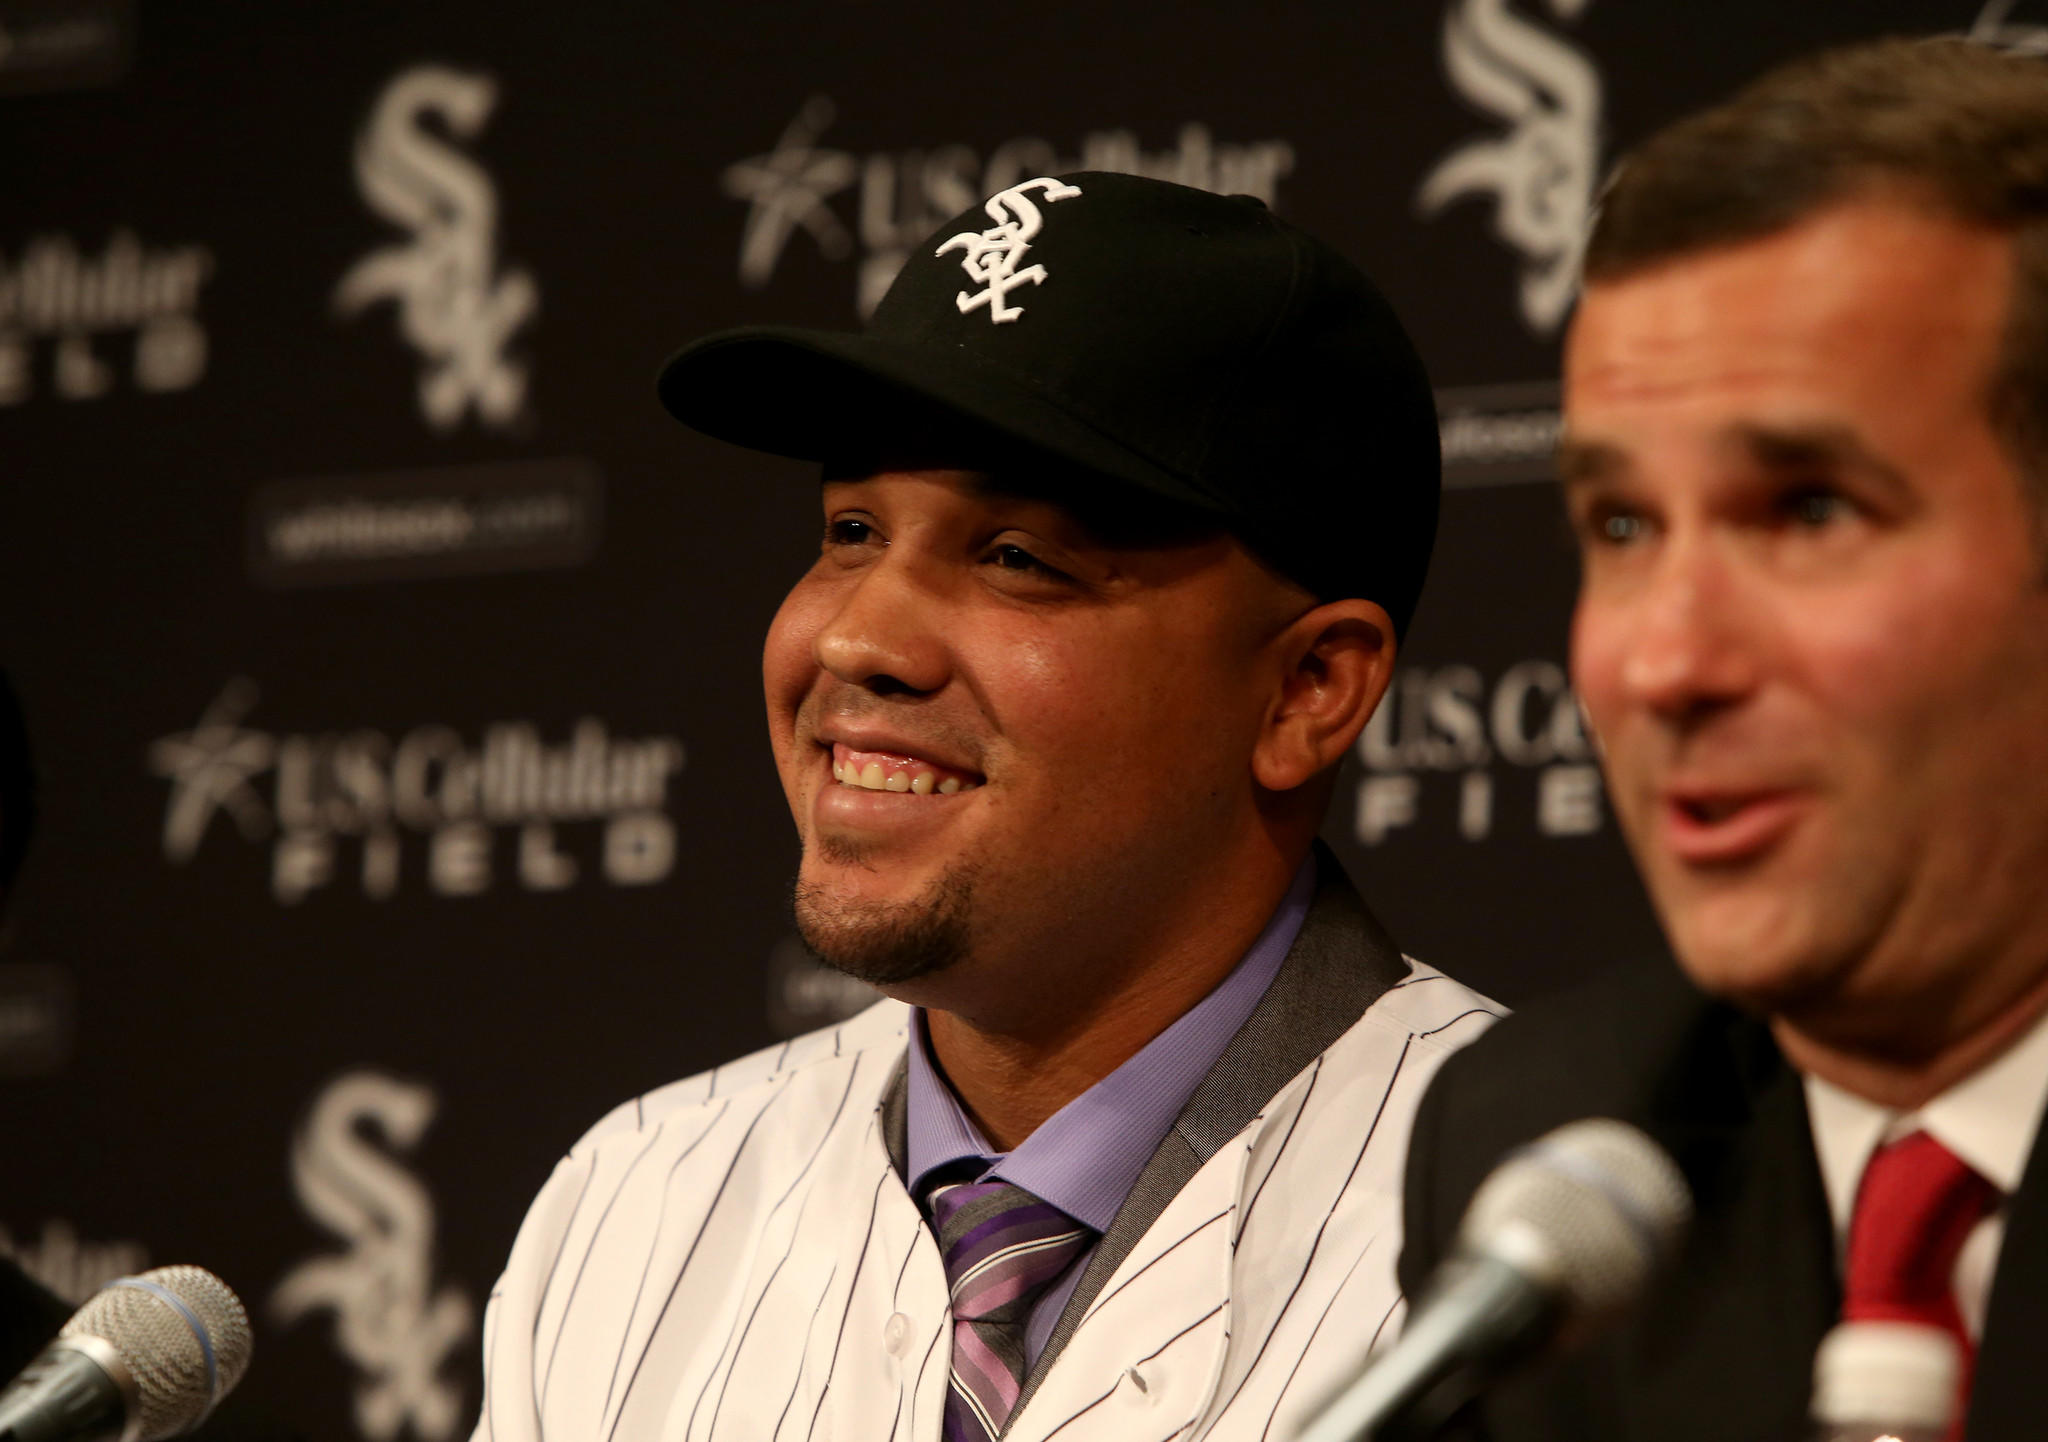 Chicago White Sox Sox general manager Rick Hahn officially announces the signing of Cuban slugger Jose Abreu, a 26-year-old first baseman at a news conference Tuesday Oct. 29, 2013, at U.S. Cellular Field.